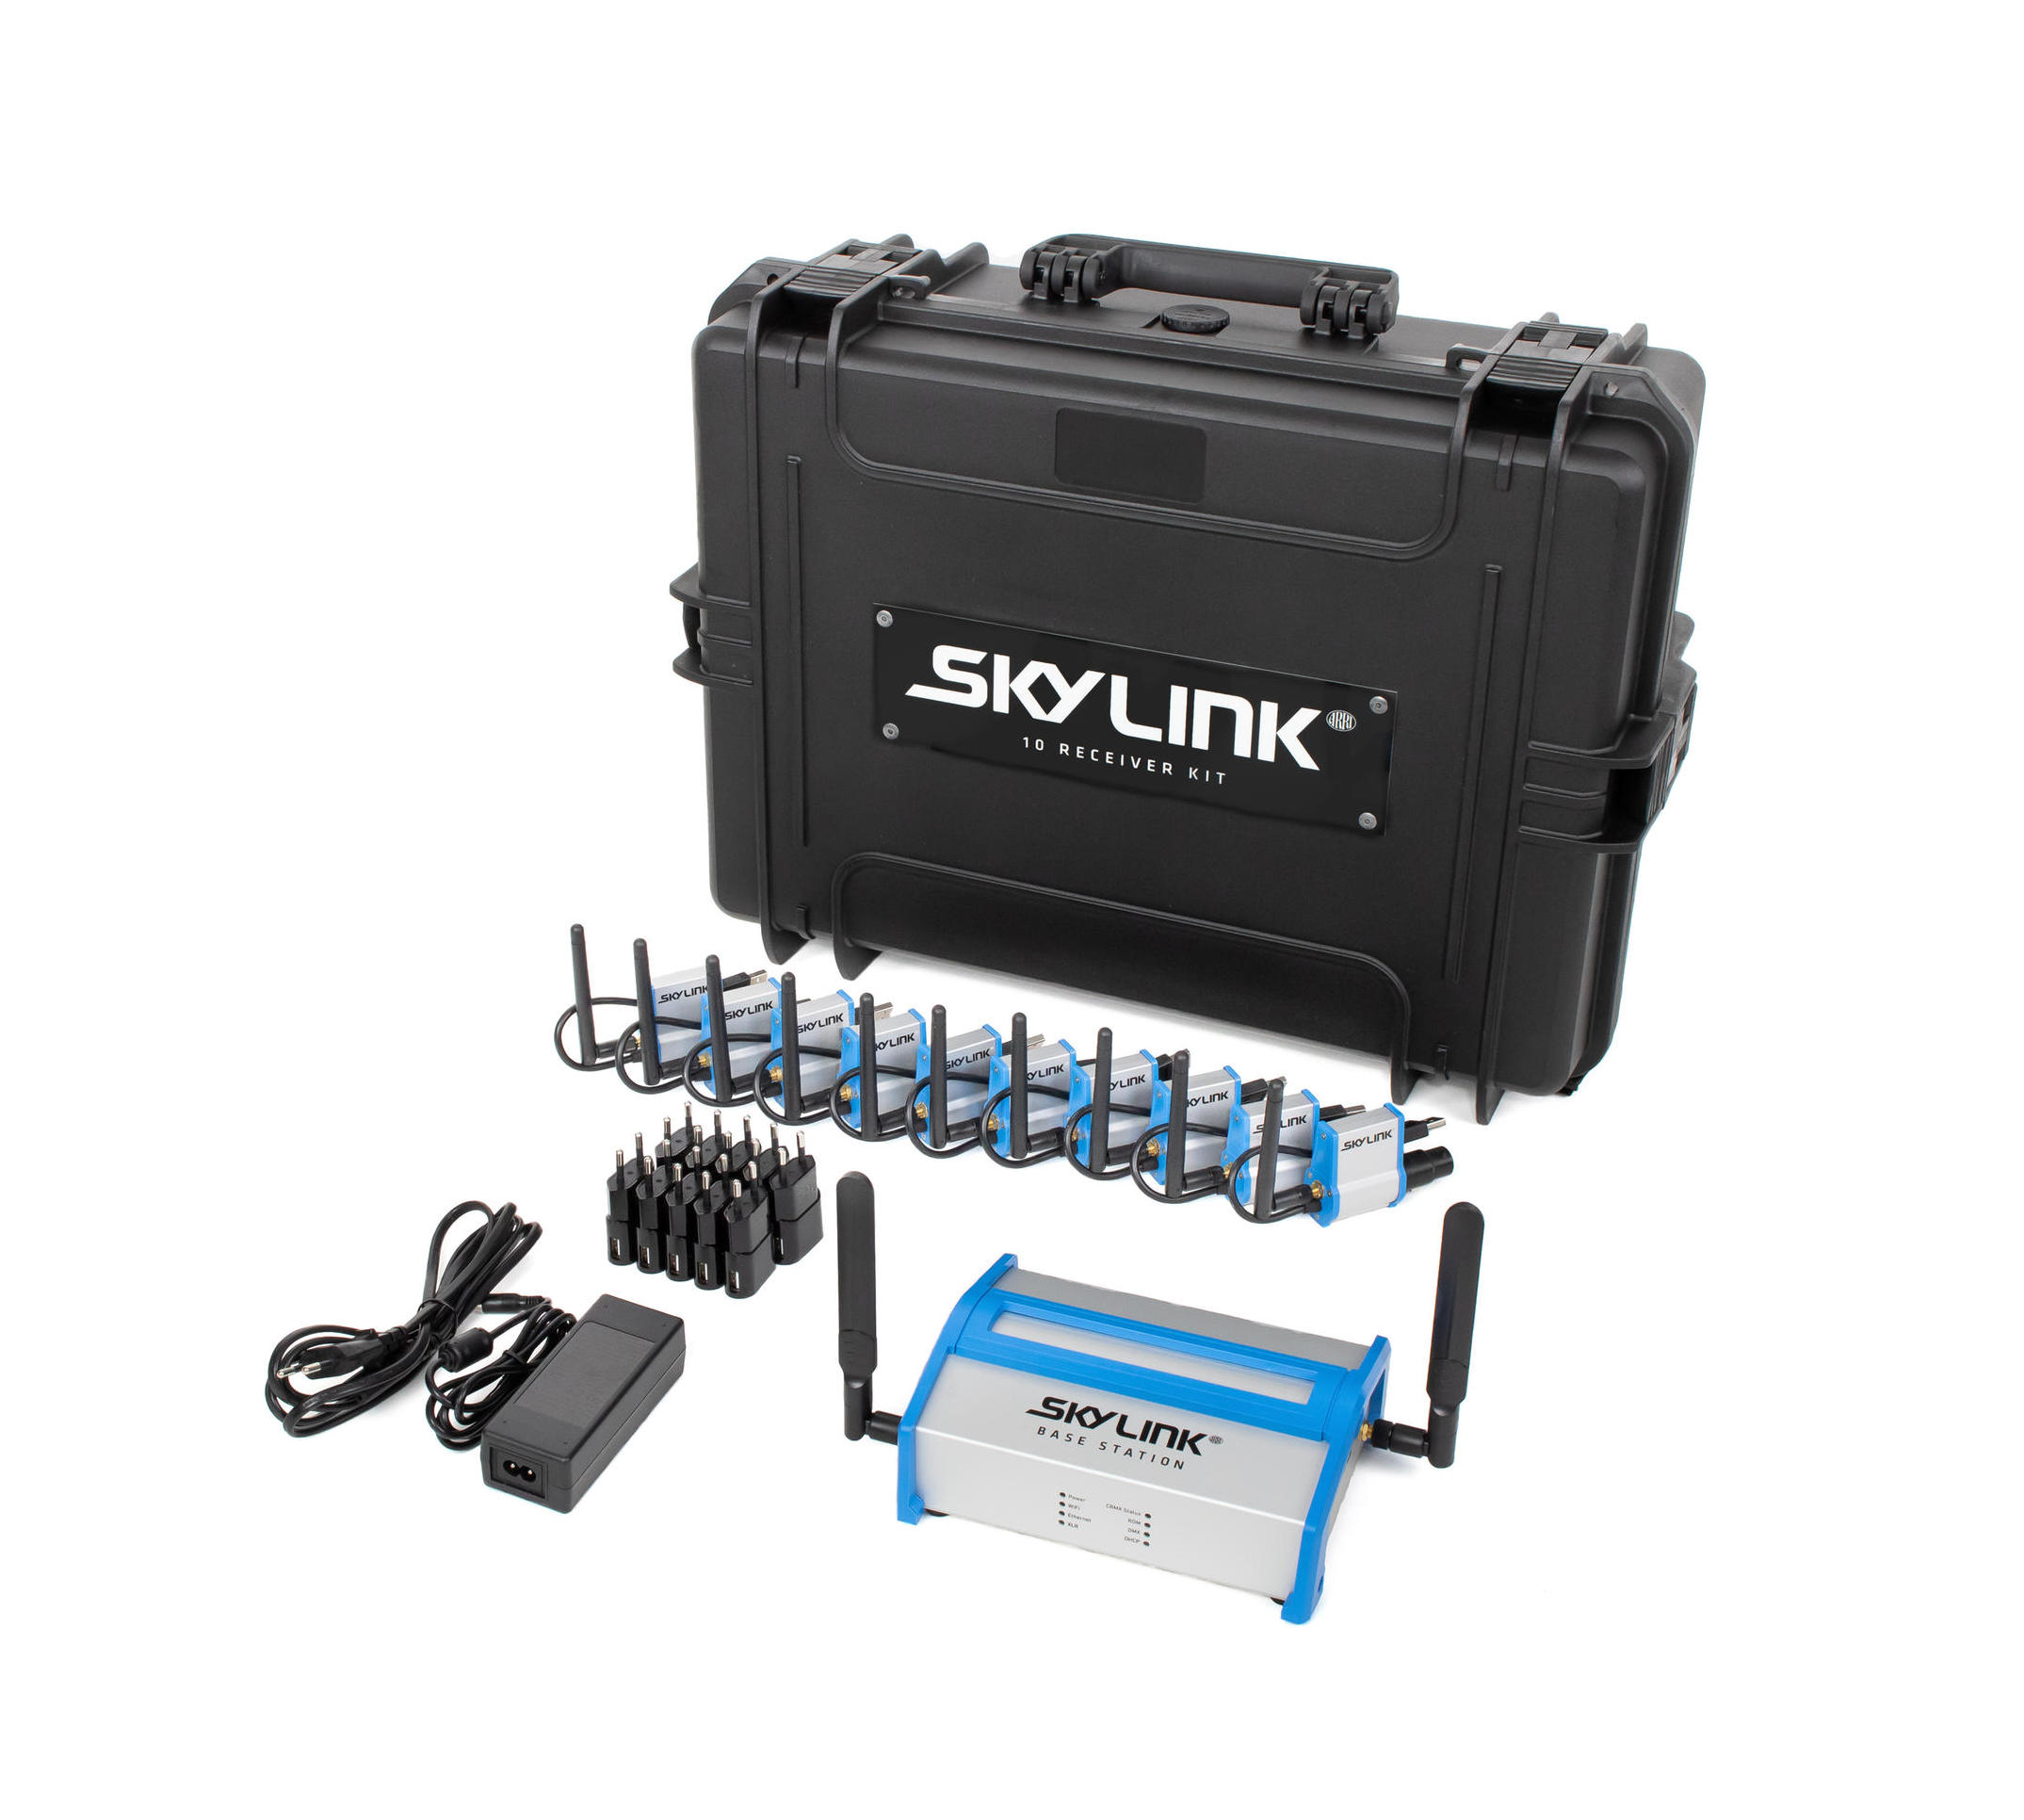 SkyLink 10 Receiver Kit - Includes Base Station, 10 Receivers and Case.For use with ARRI Stellar App. Seamlessly connect & control LED lights from the entire ARRI line.